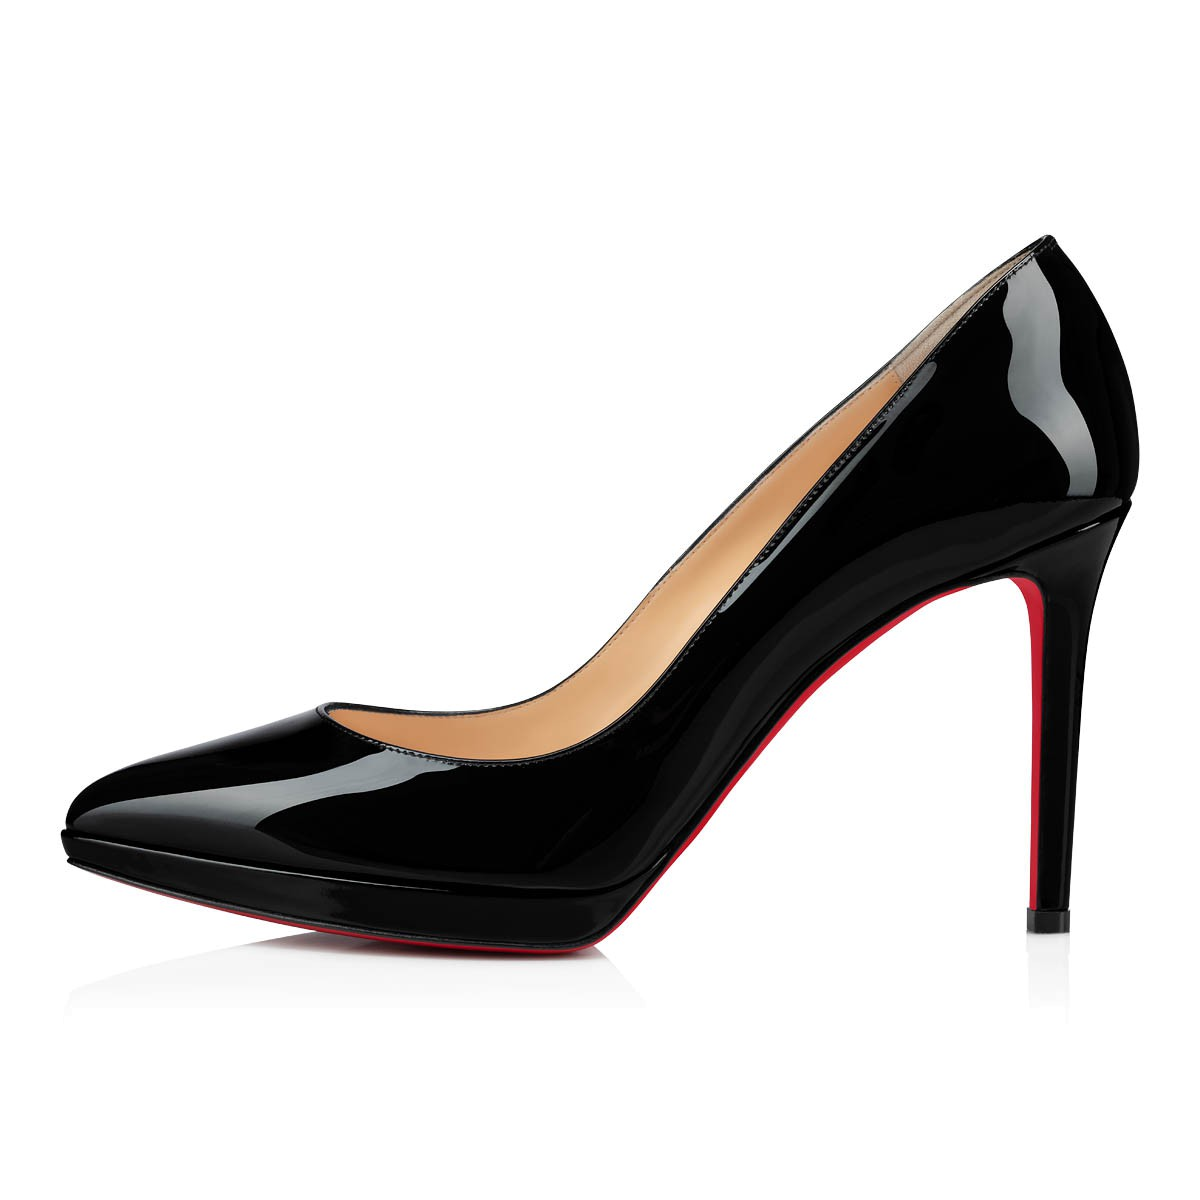 Women Shoes - Pigalle Plato - Christian Louboutin